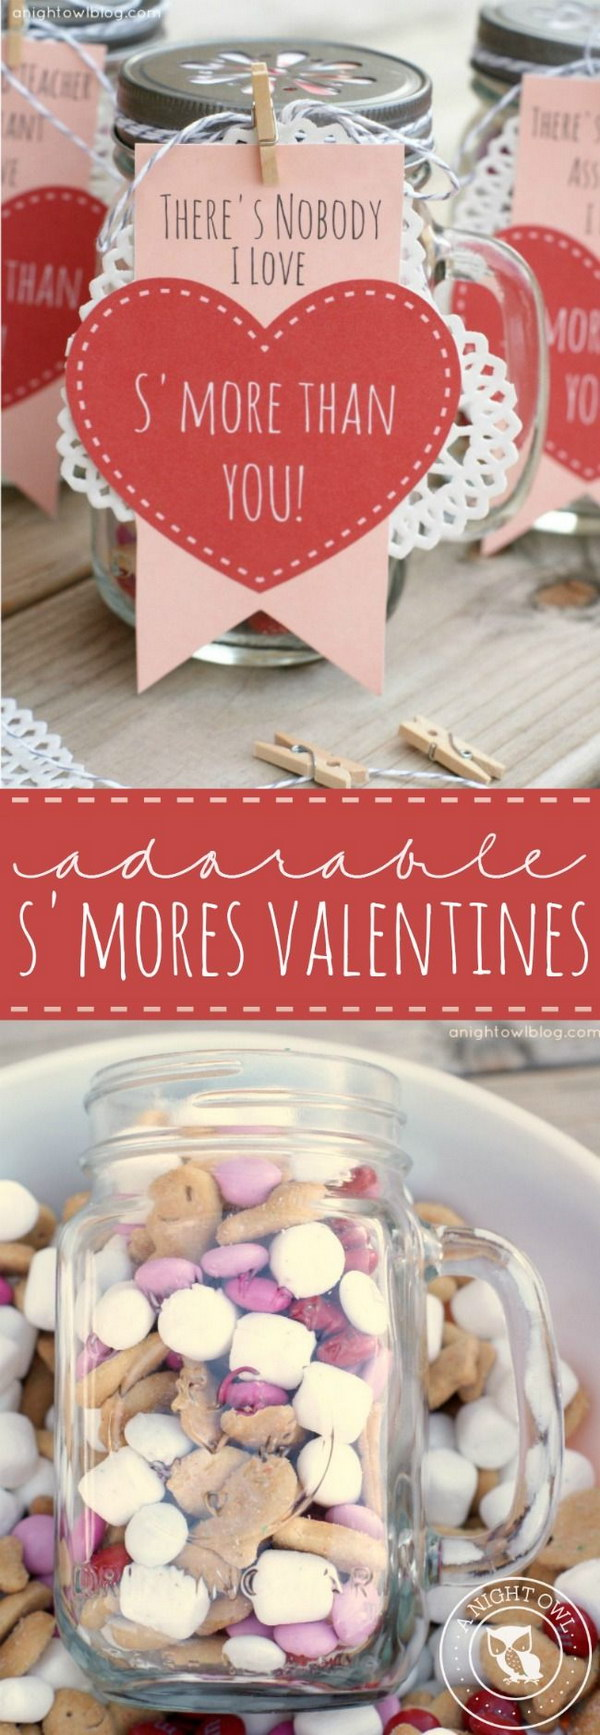 Mason Jars Filled with S'mores Snack Mix Includes FREE Printables